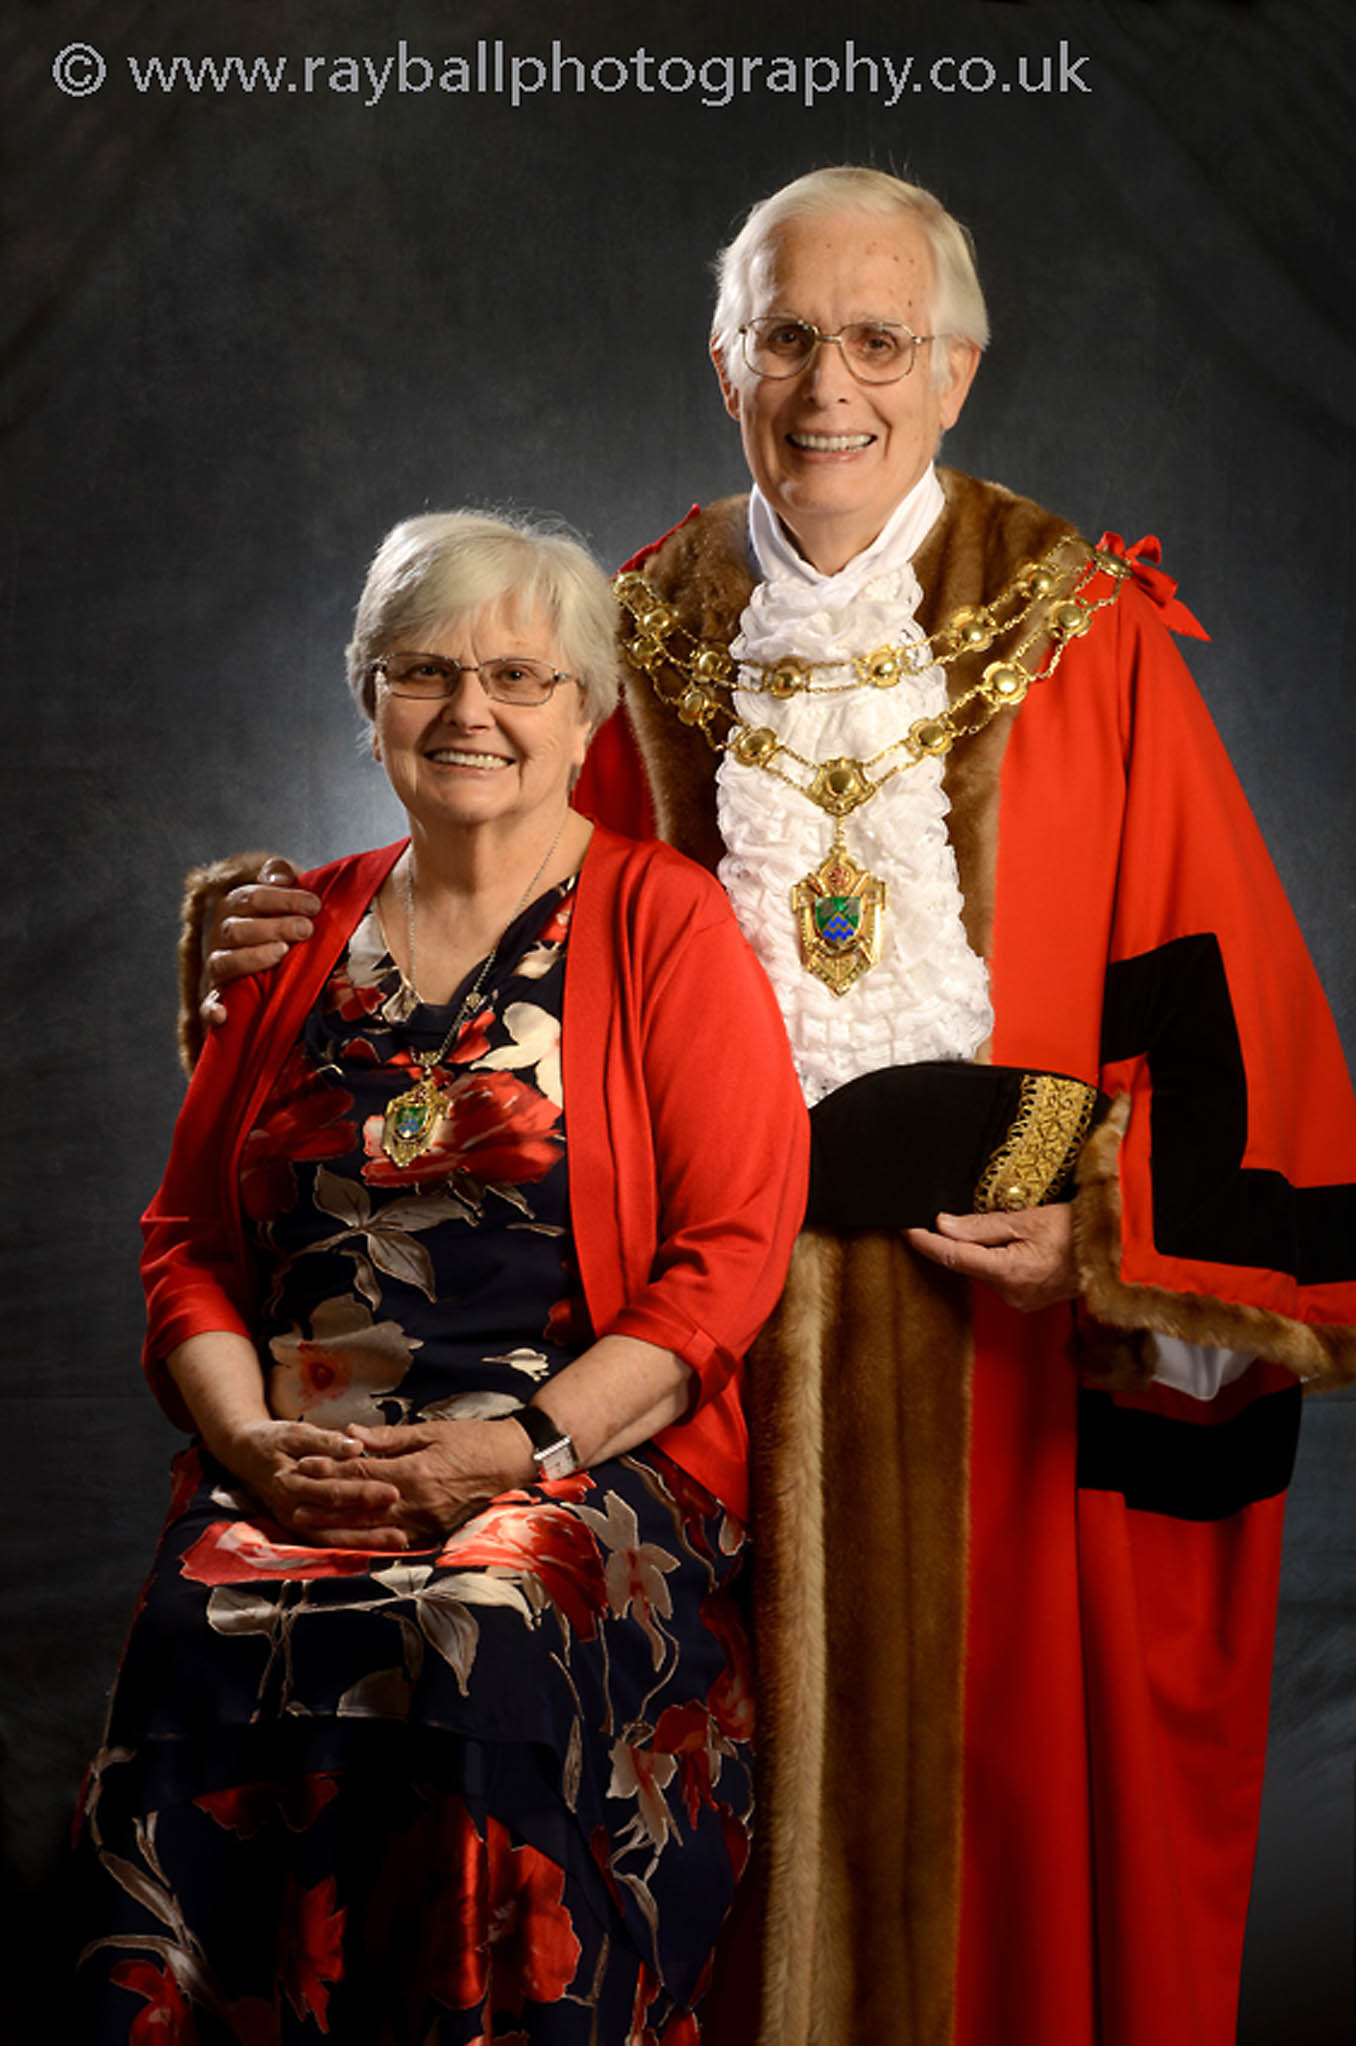 Portrait of the Mayor of Epsom and Ewell with his wife the Lady Mayor. The Epsom races started as a steeple chase between Epsom and Banstead.